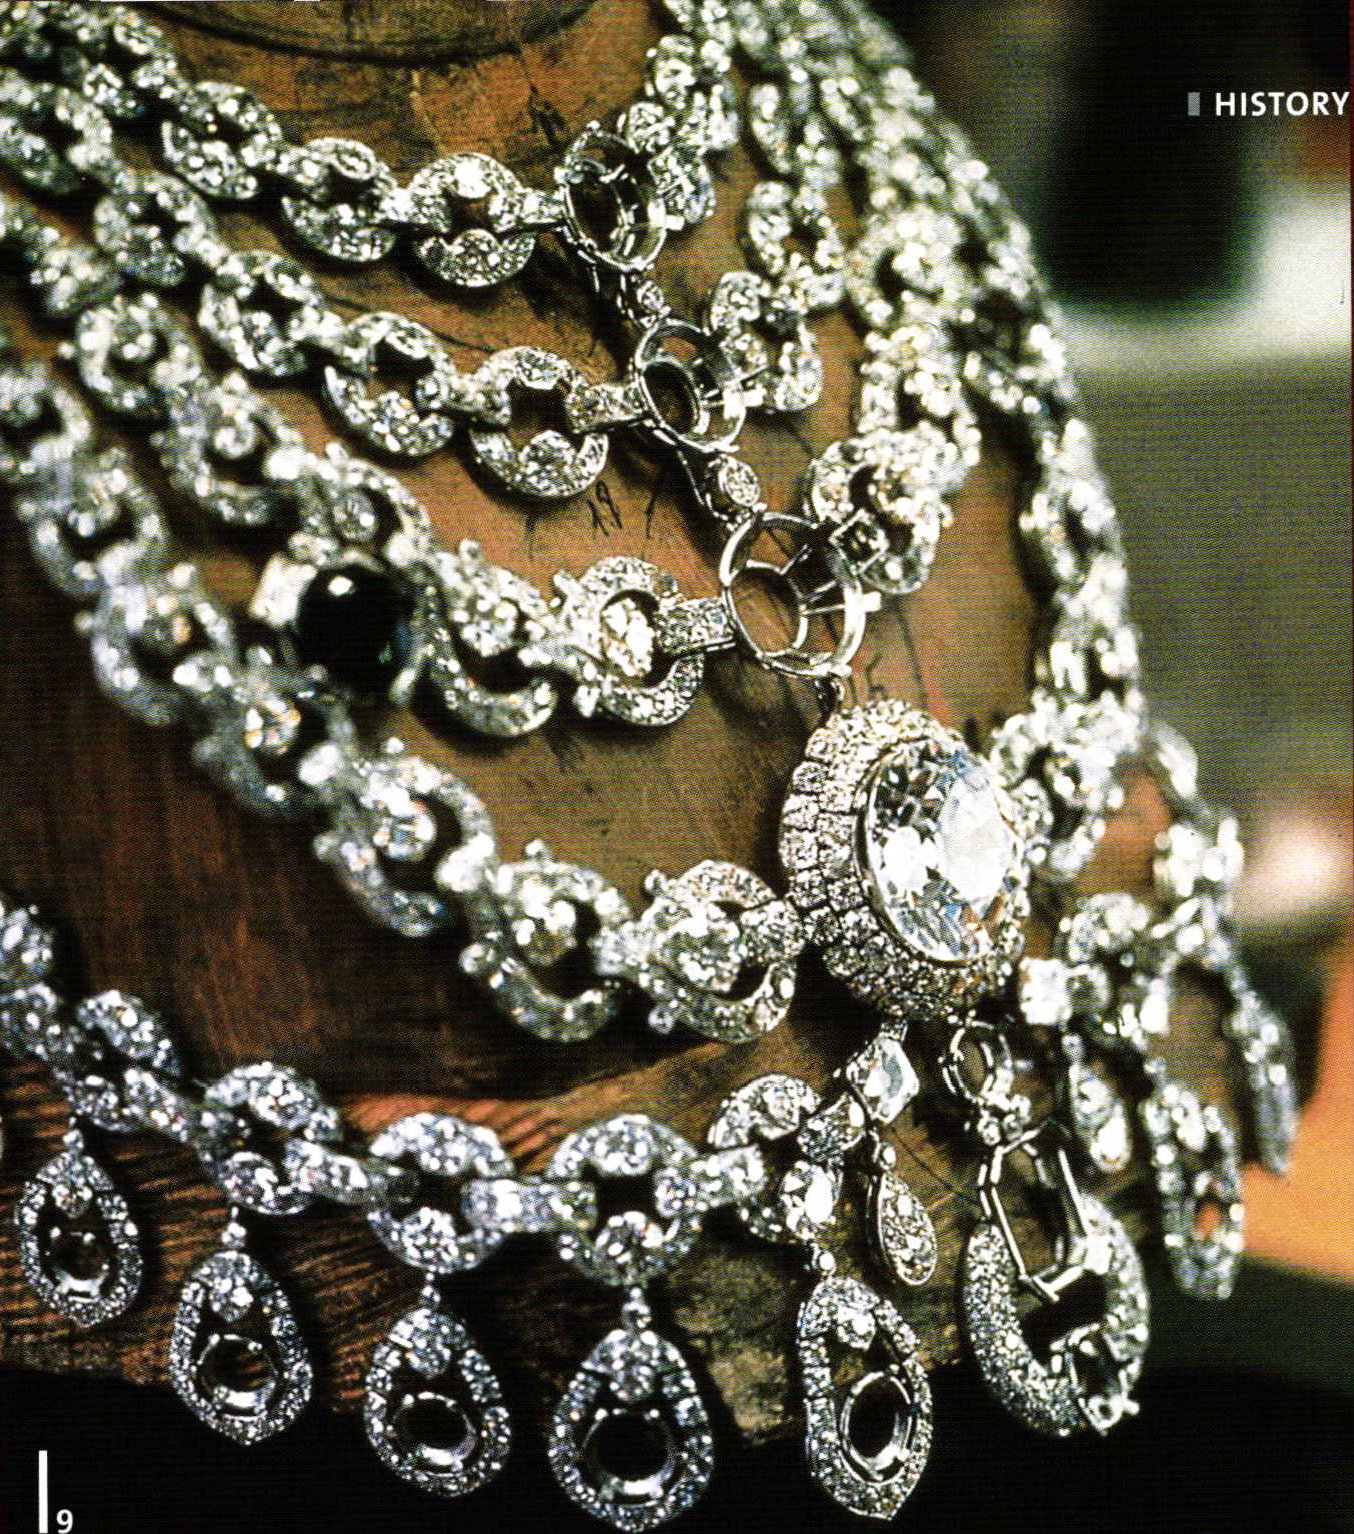 History of Precious White Metals in Bridal Jewelry